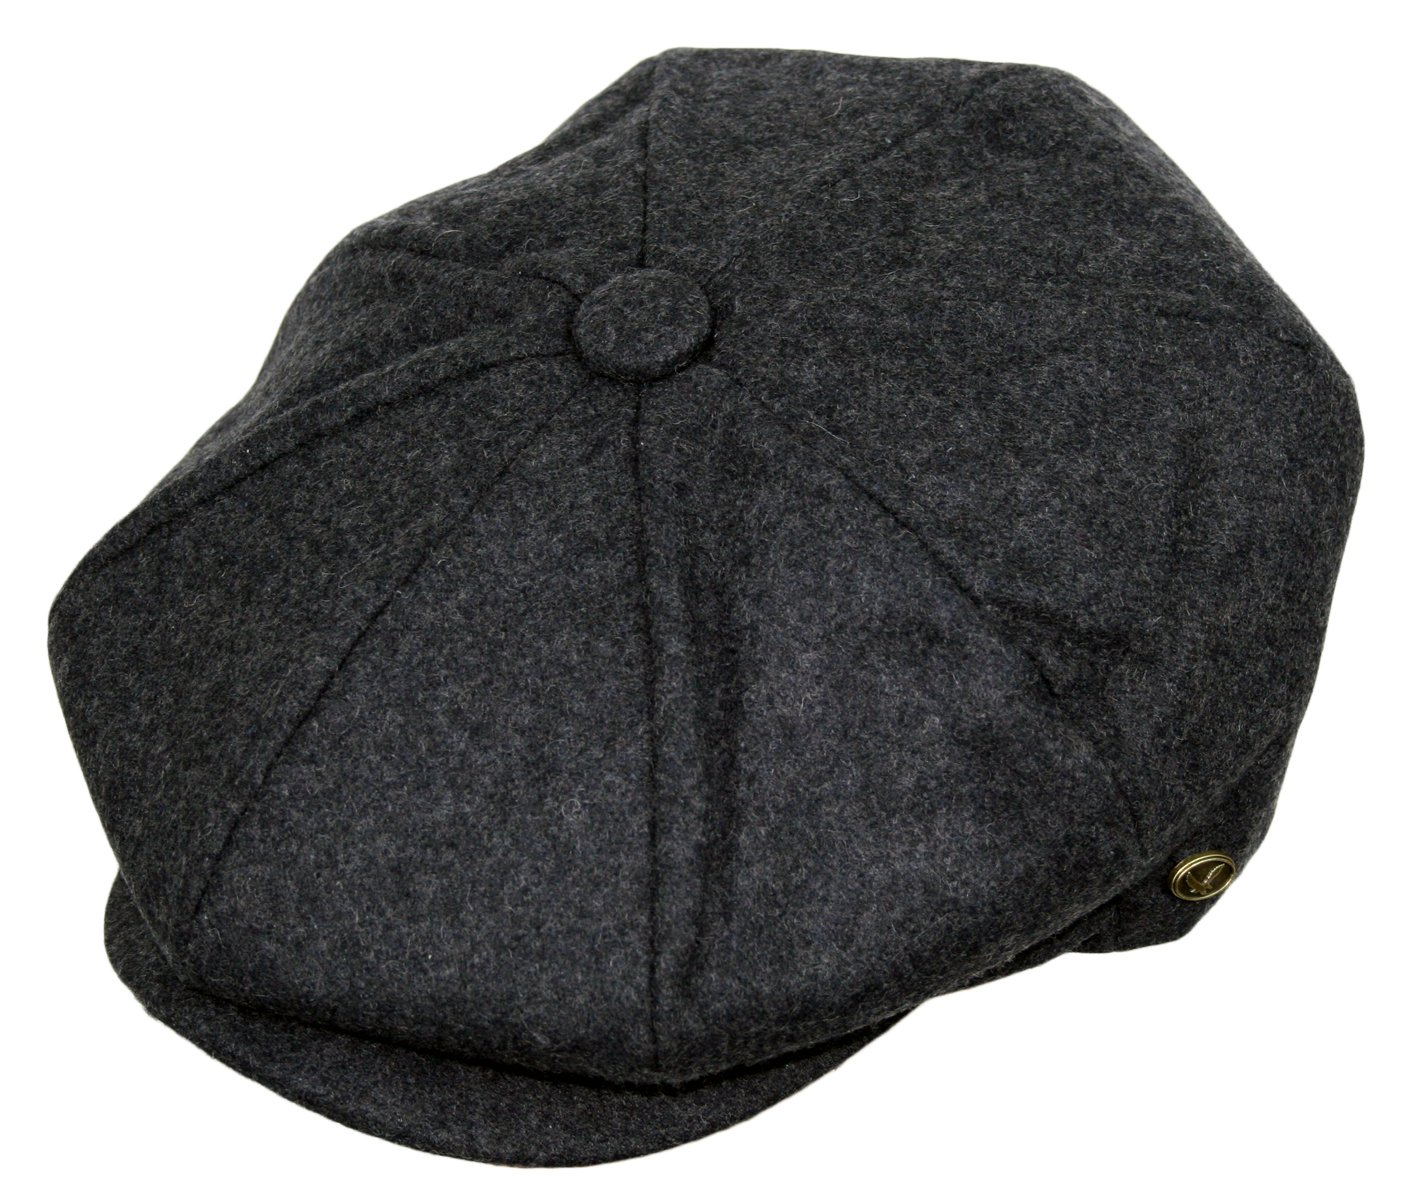 Epoch Men s Classic 8 Panel Wool Blend newsboy Snap Brim Collection Hat  product image 410693c6ffc4